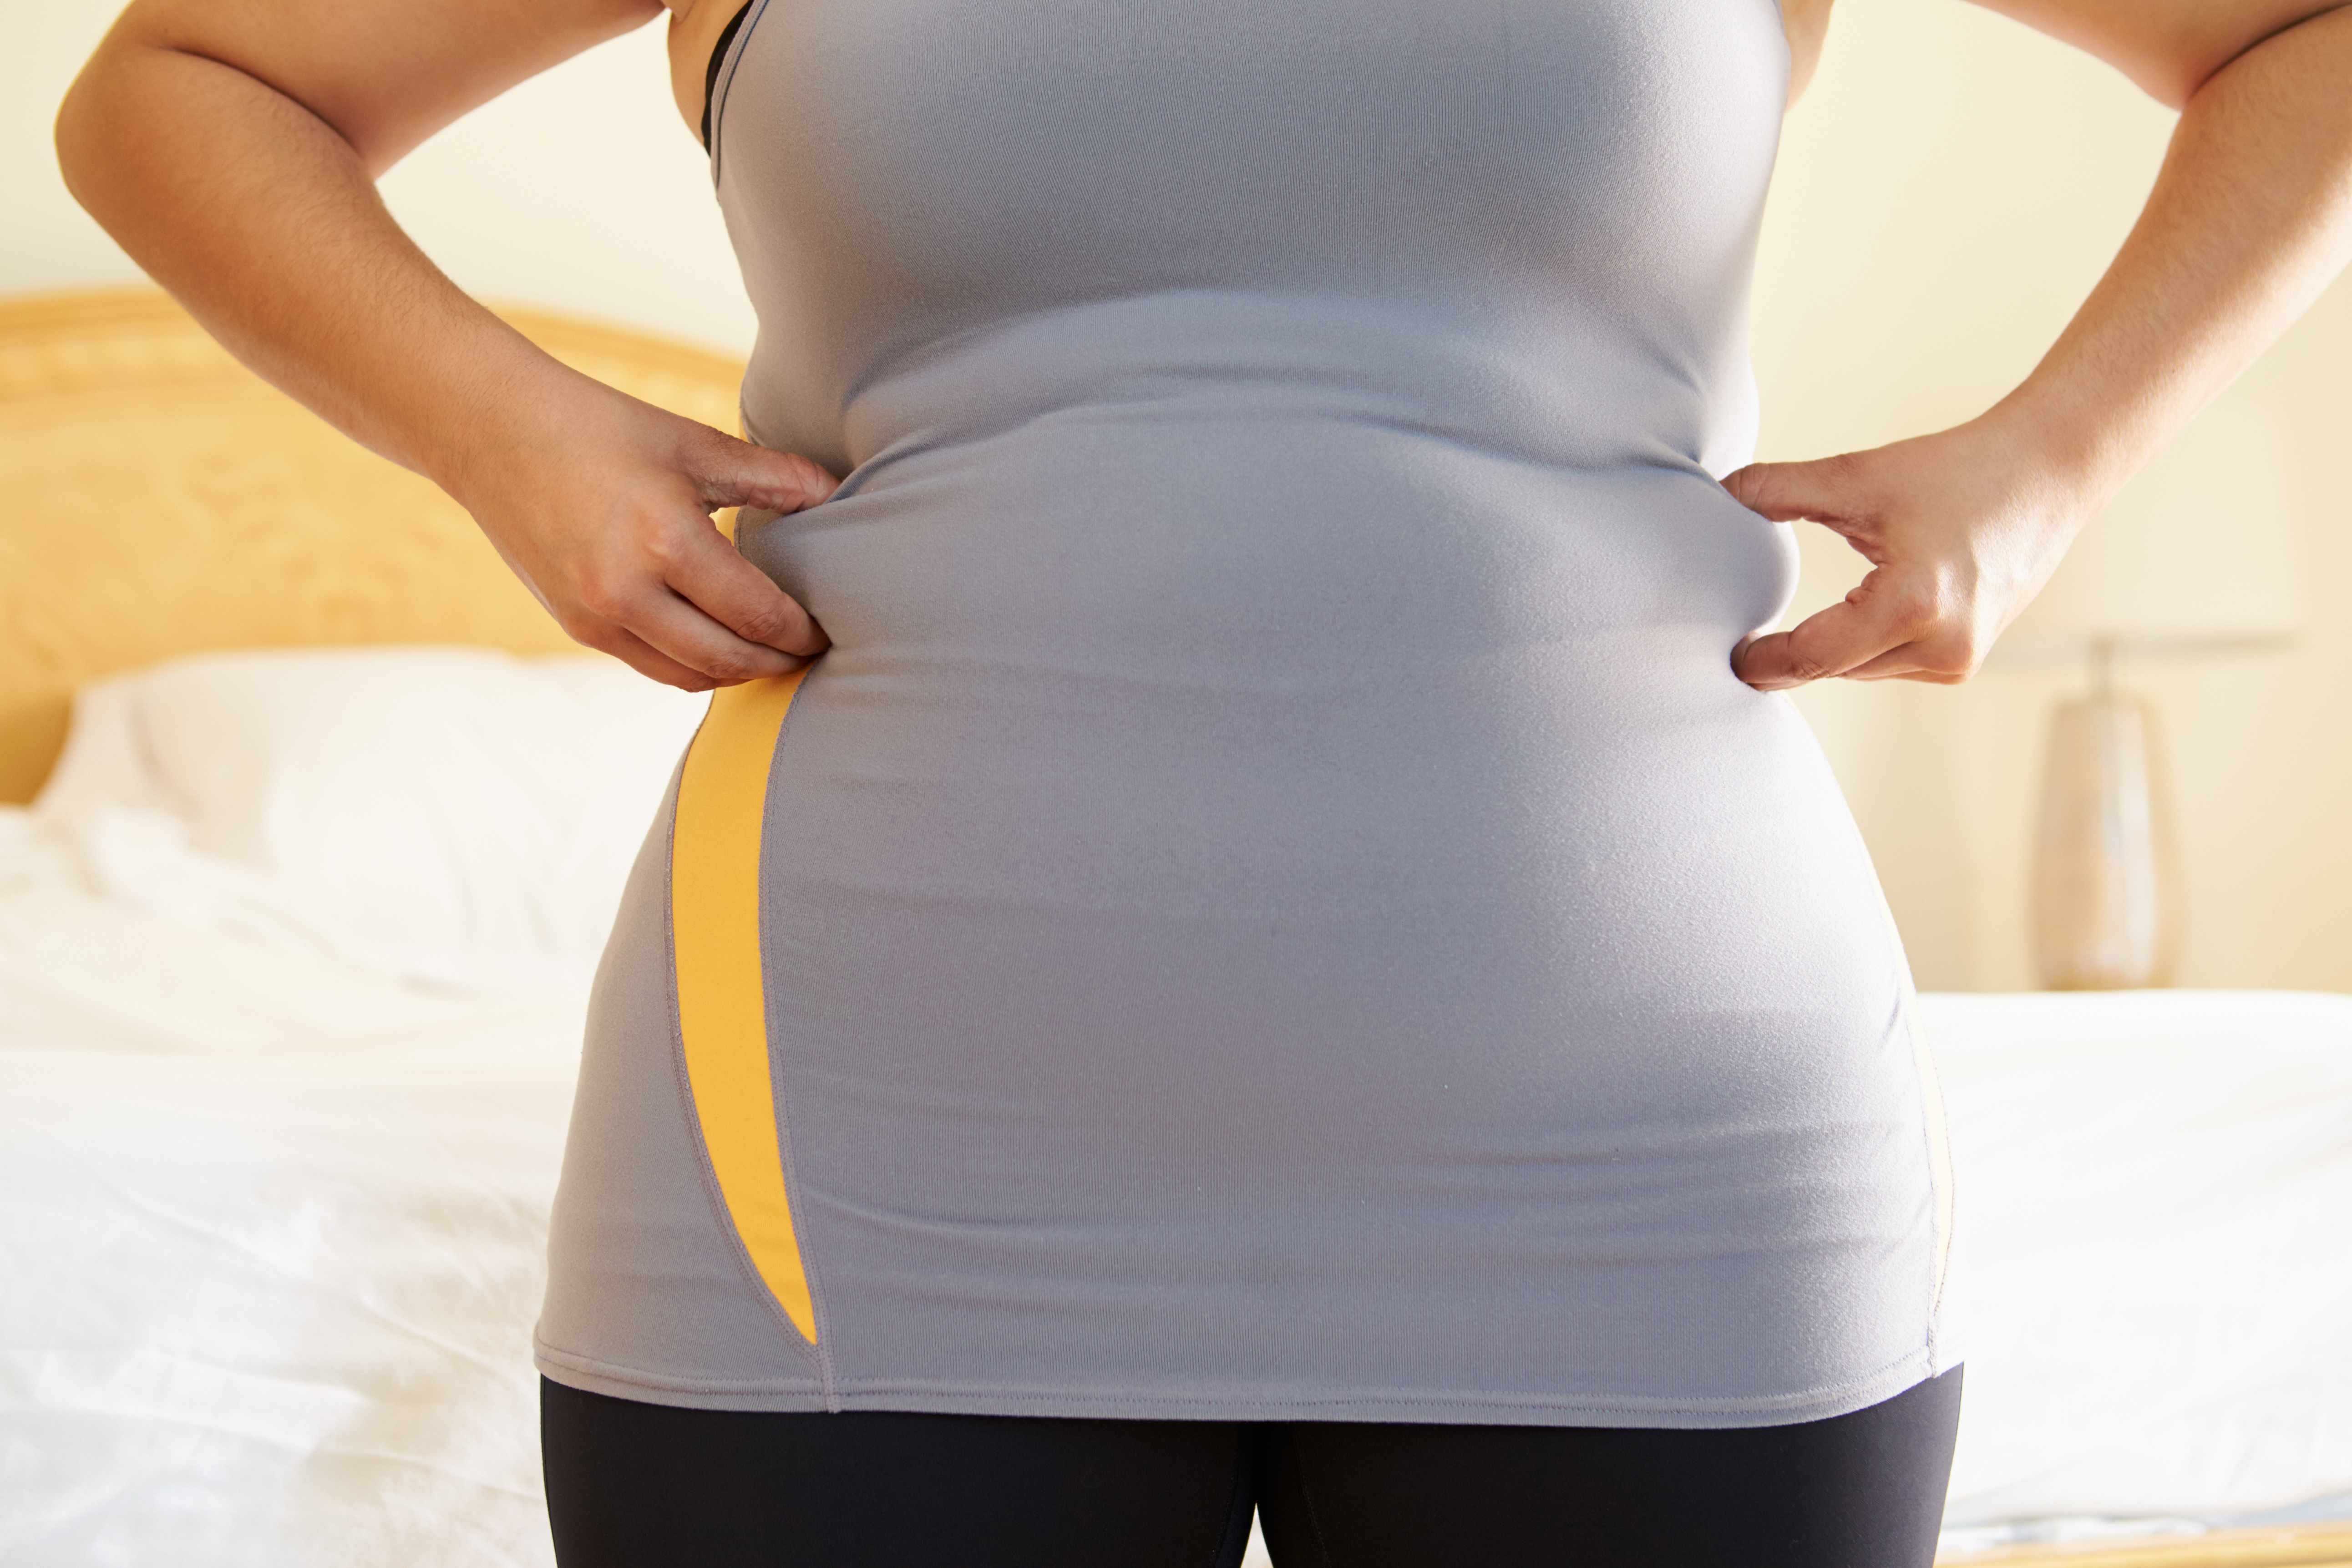 a woman measuring her waist and stomach looking for fat, concerned about weight gain